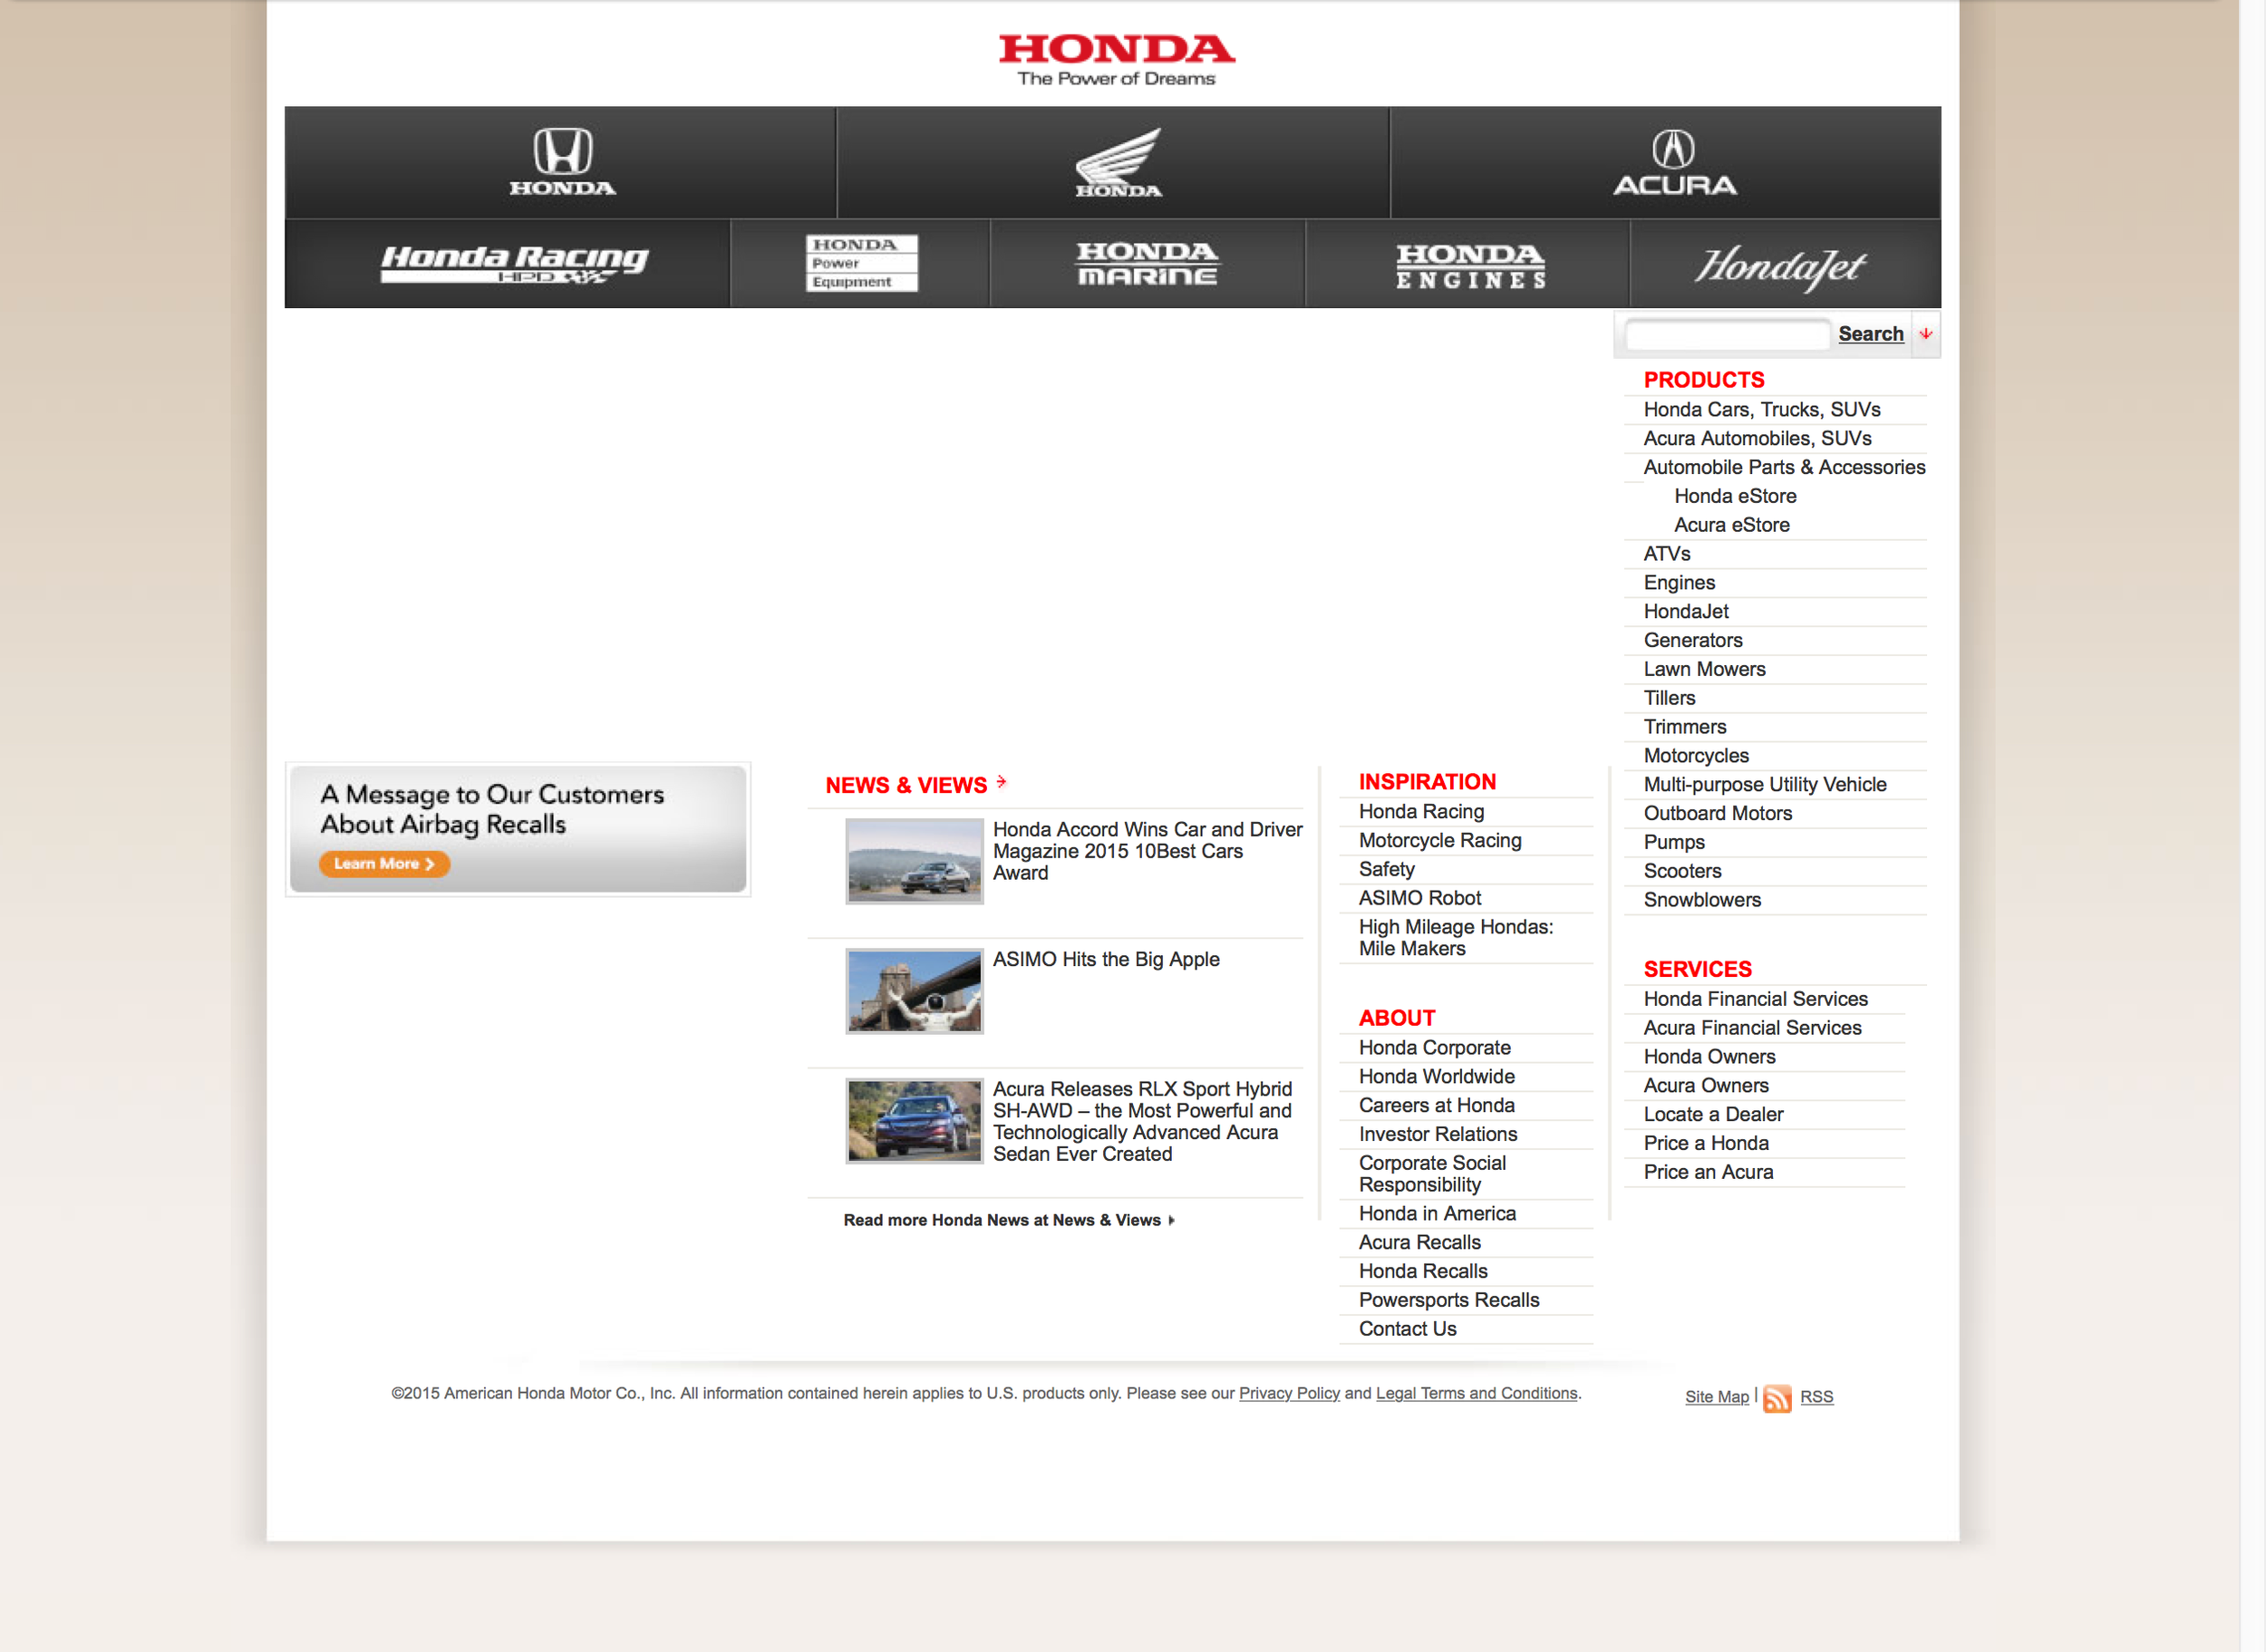 Honda.com at the beginning of 2015. The less said about this the better, but Honda deserved much more.